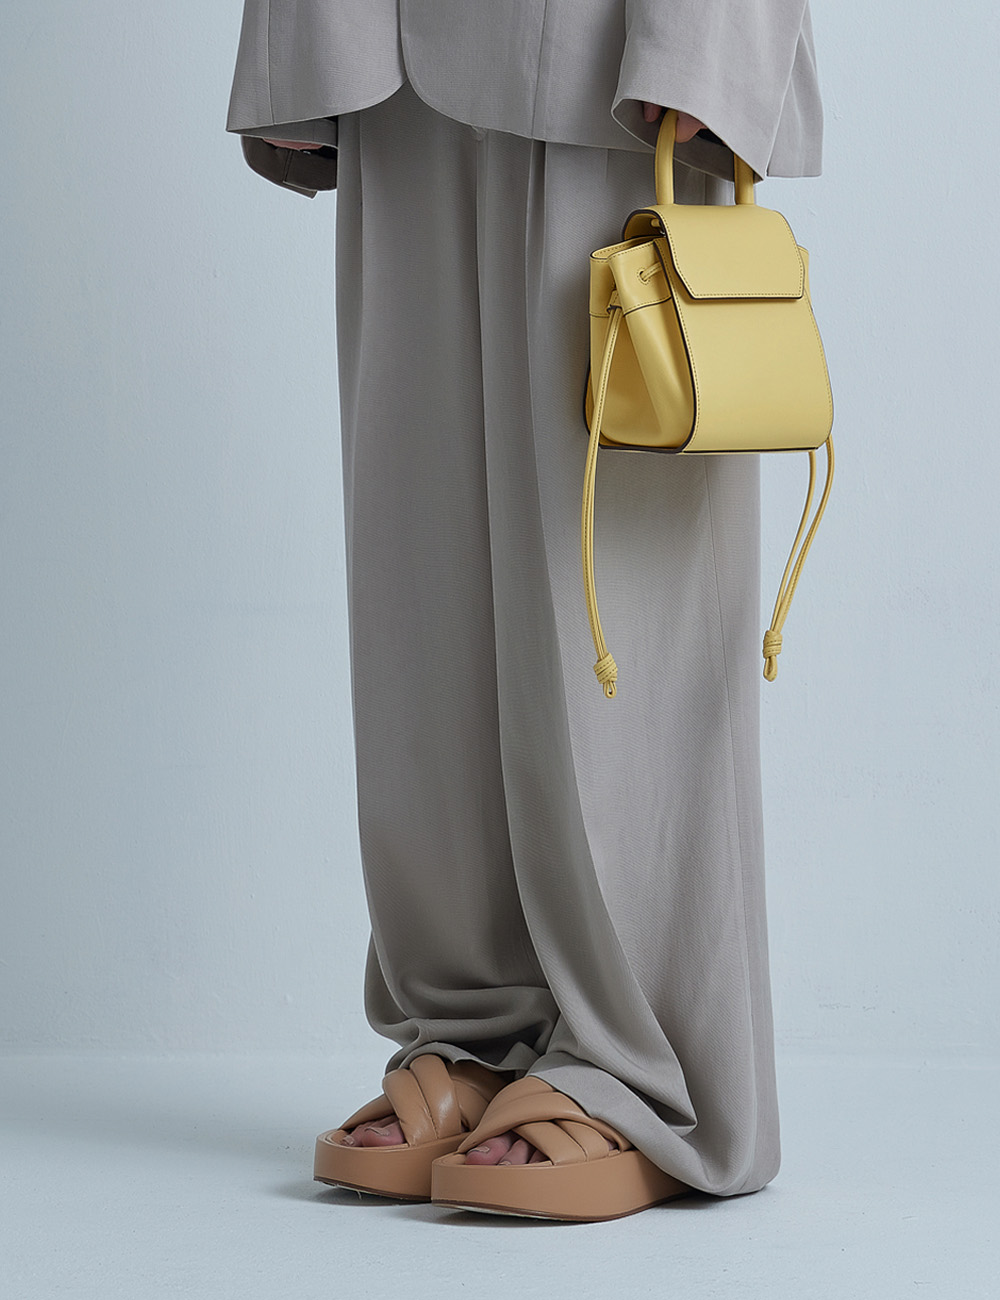 MAISON246,[퍼/메탈체인증정]246 PANIER BAG - YELLOW,No.246